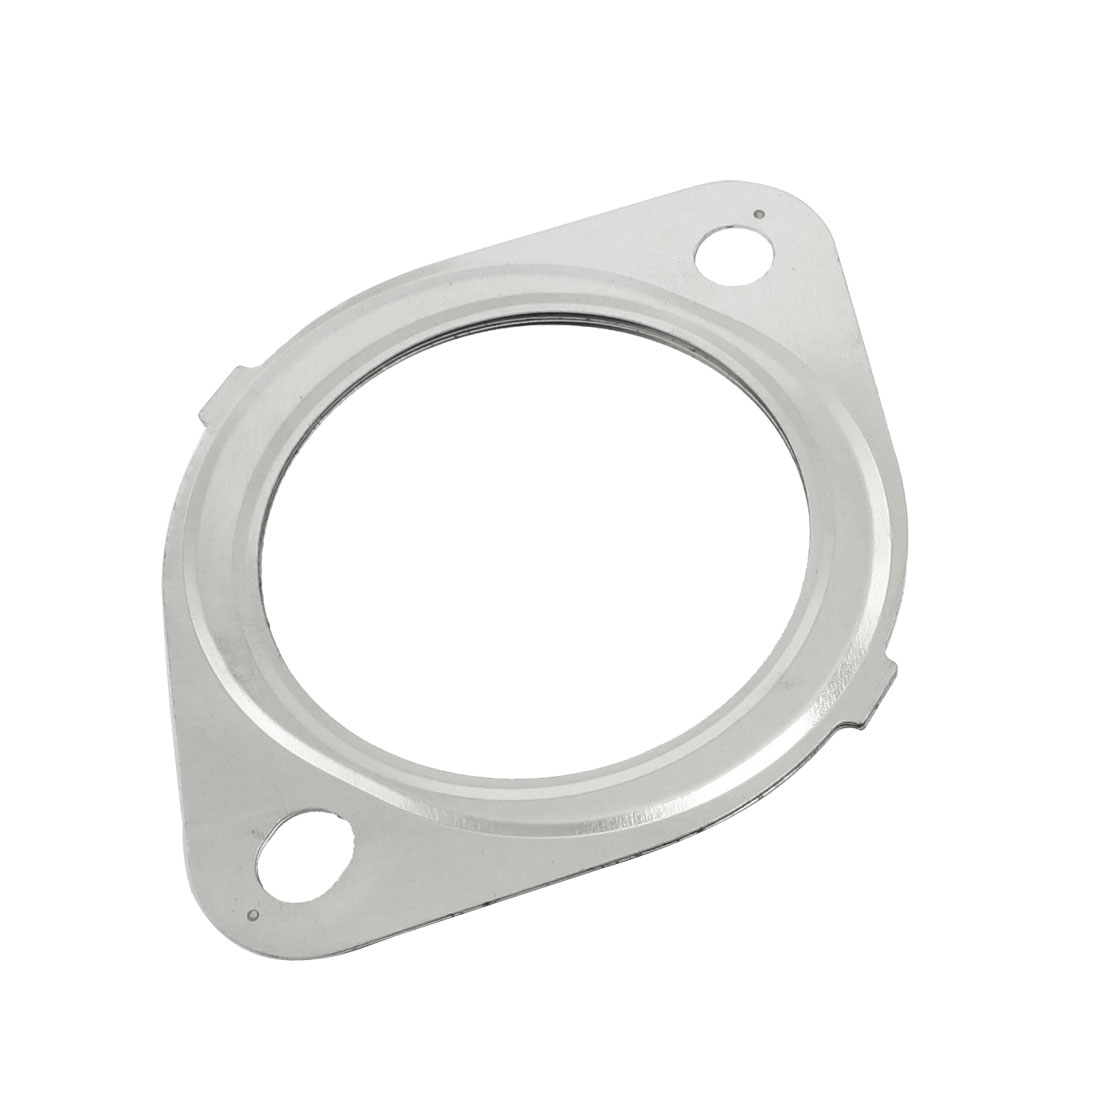 Silver Tone 71mm Inner Dia Universal Exhaust Flange Gasket for Nissan